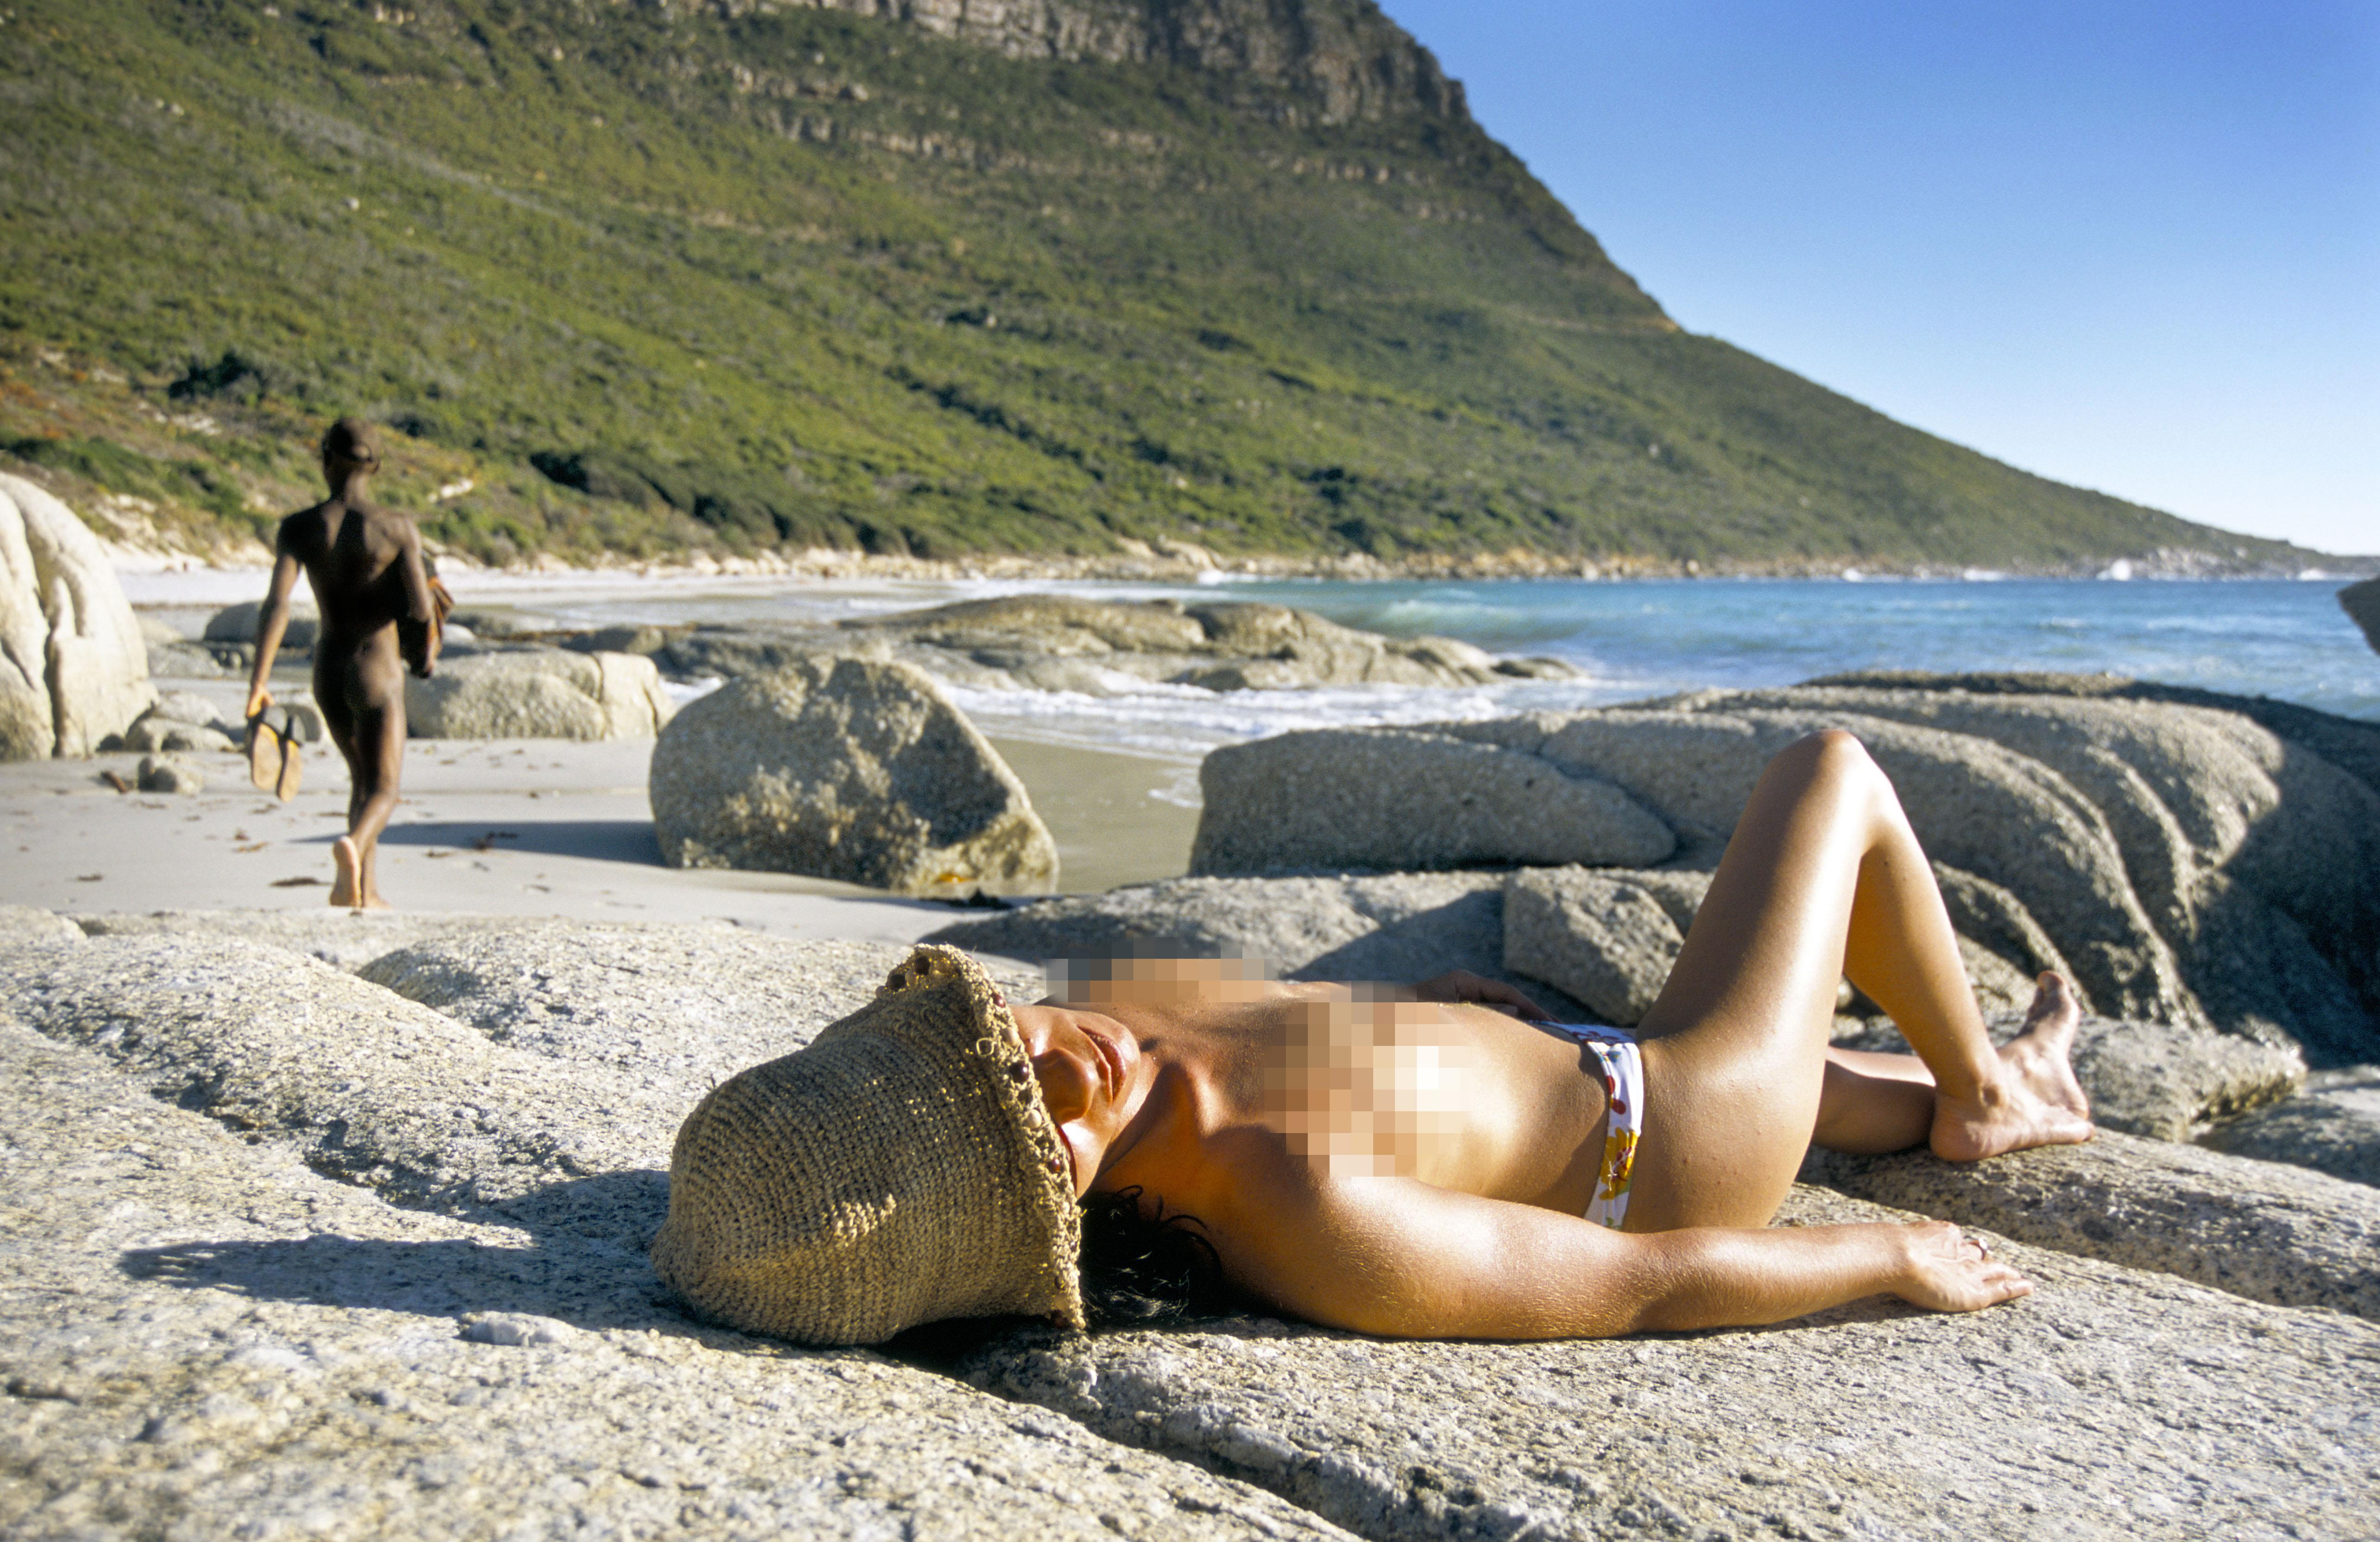 Nude beaches uncensored naked